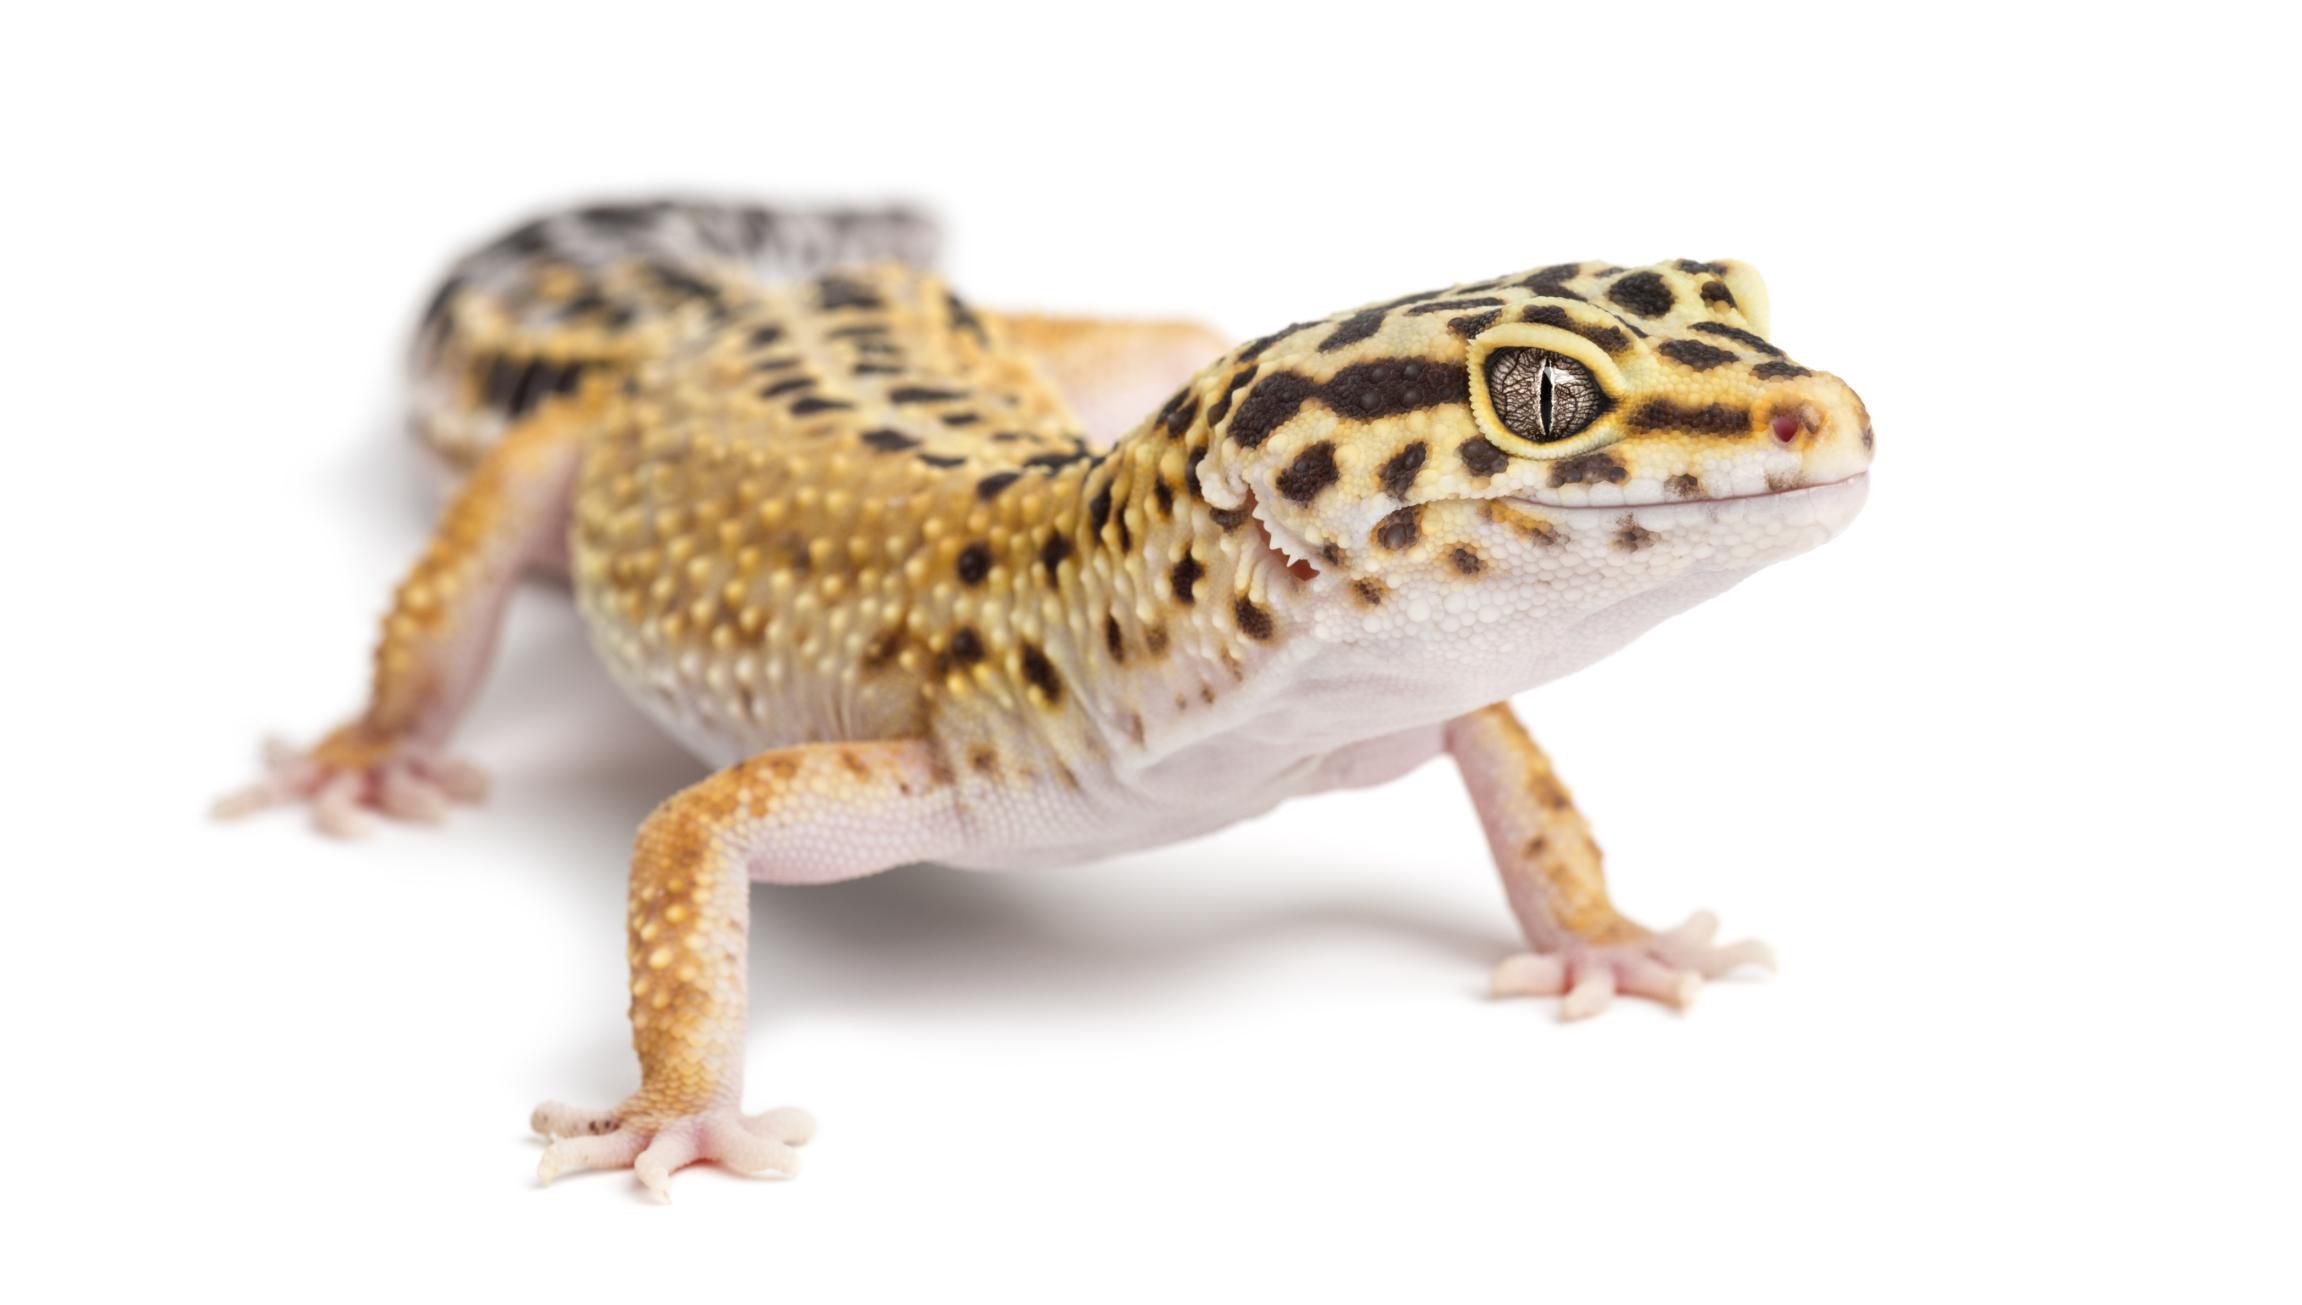 Guide to red footed tortoises as pets your guide to keeping leopard geckos as pets nvjuhfo Images